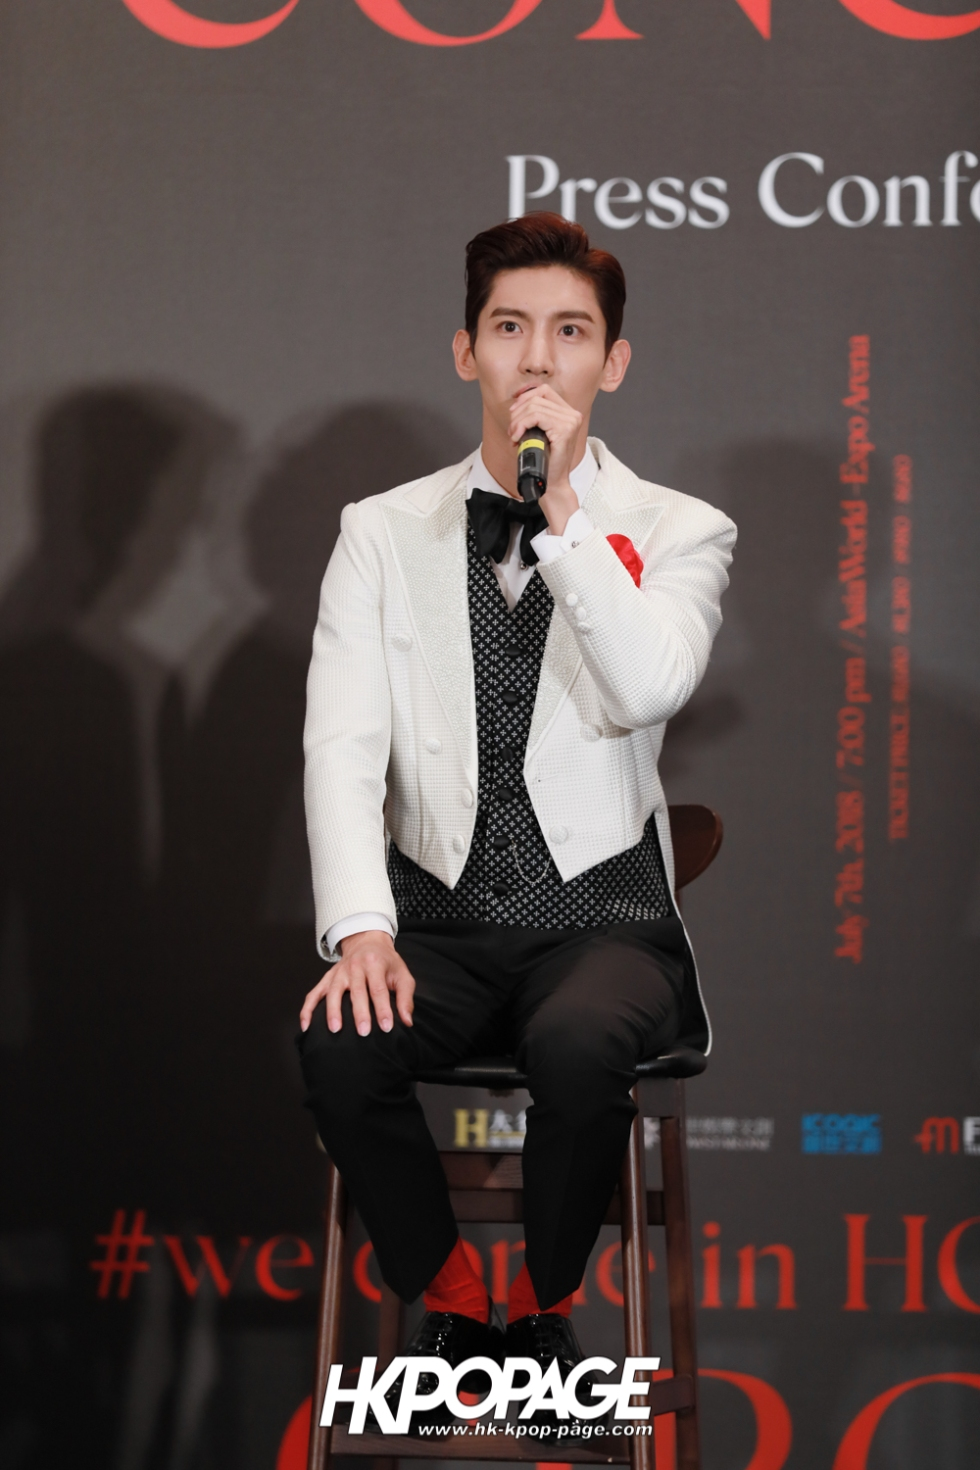 [HK.KPOP.PAGE] 180707_TVXQ! CONCERT - CIRCLE- #welcome in HONG KONG Press Conference_11